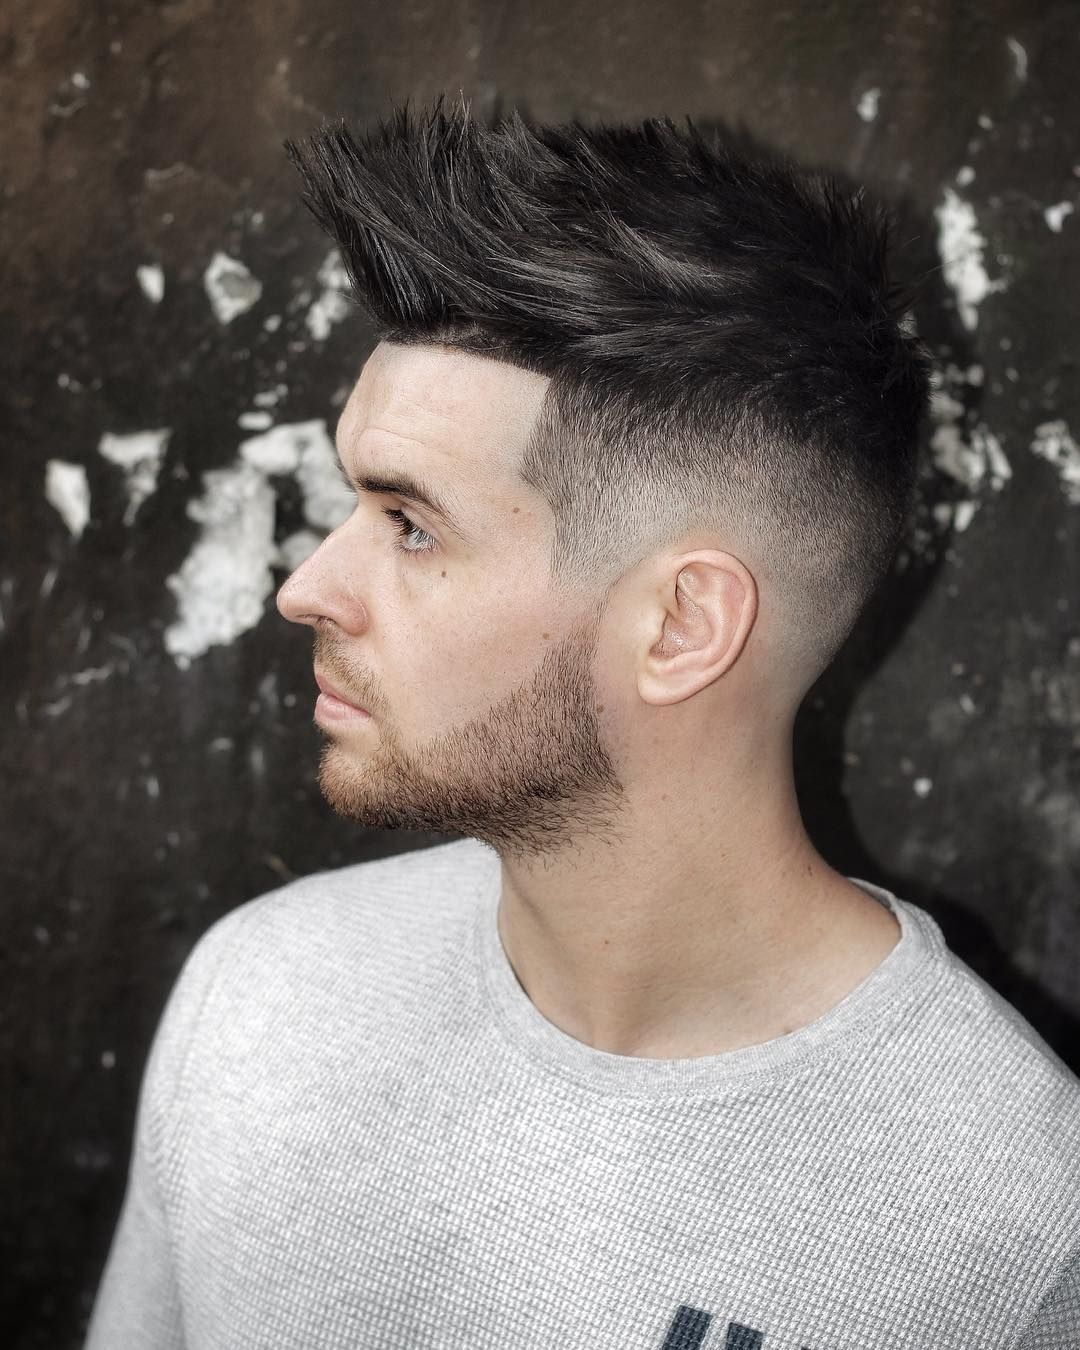 Trendy men haircuts haircut by ryancullenhair ifthlml menshair